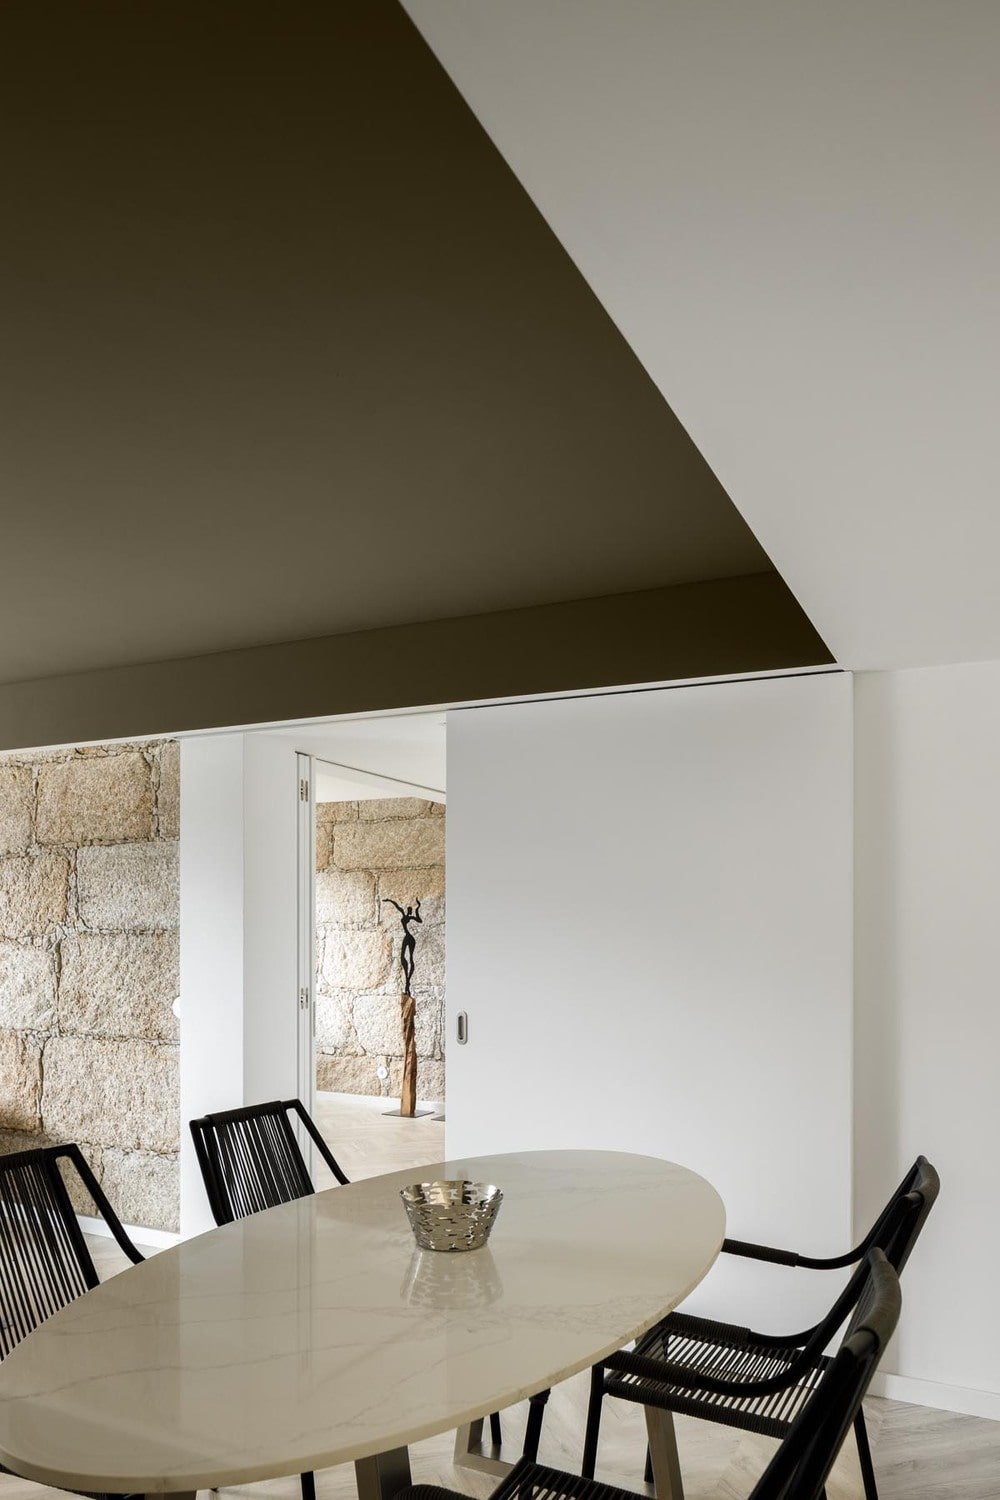 This angle showcases the elliptical shape of the dining table and its beige tone that matches the floor.